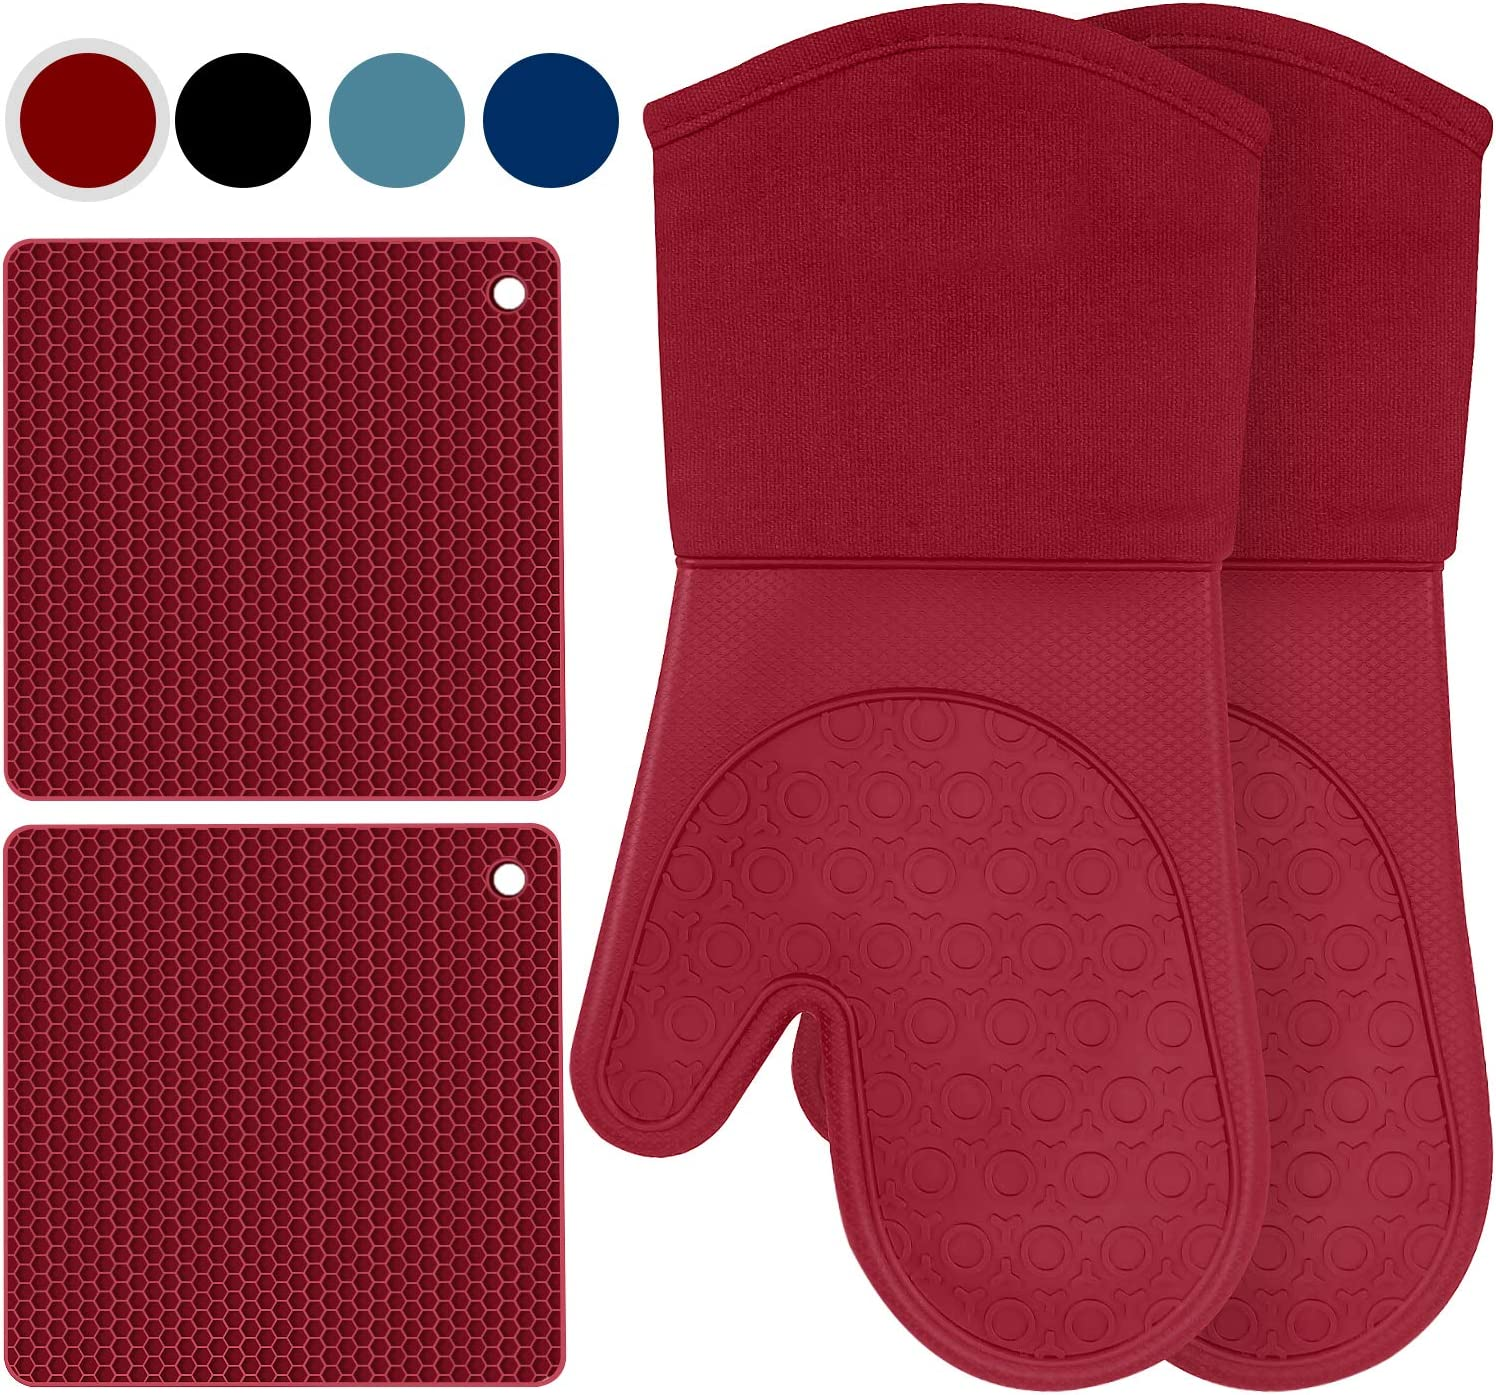 Tosuizum Silicone Oven Mitts Set, Heat Resistant and Non-Slip Oven Gloves with Cotton Lining, Set of 4 (2PCS Oven Mitts, 2PCS Pot Holders) - Burgundy